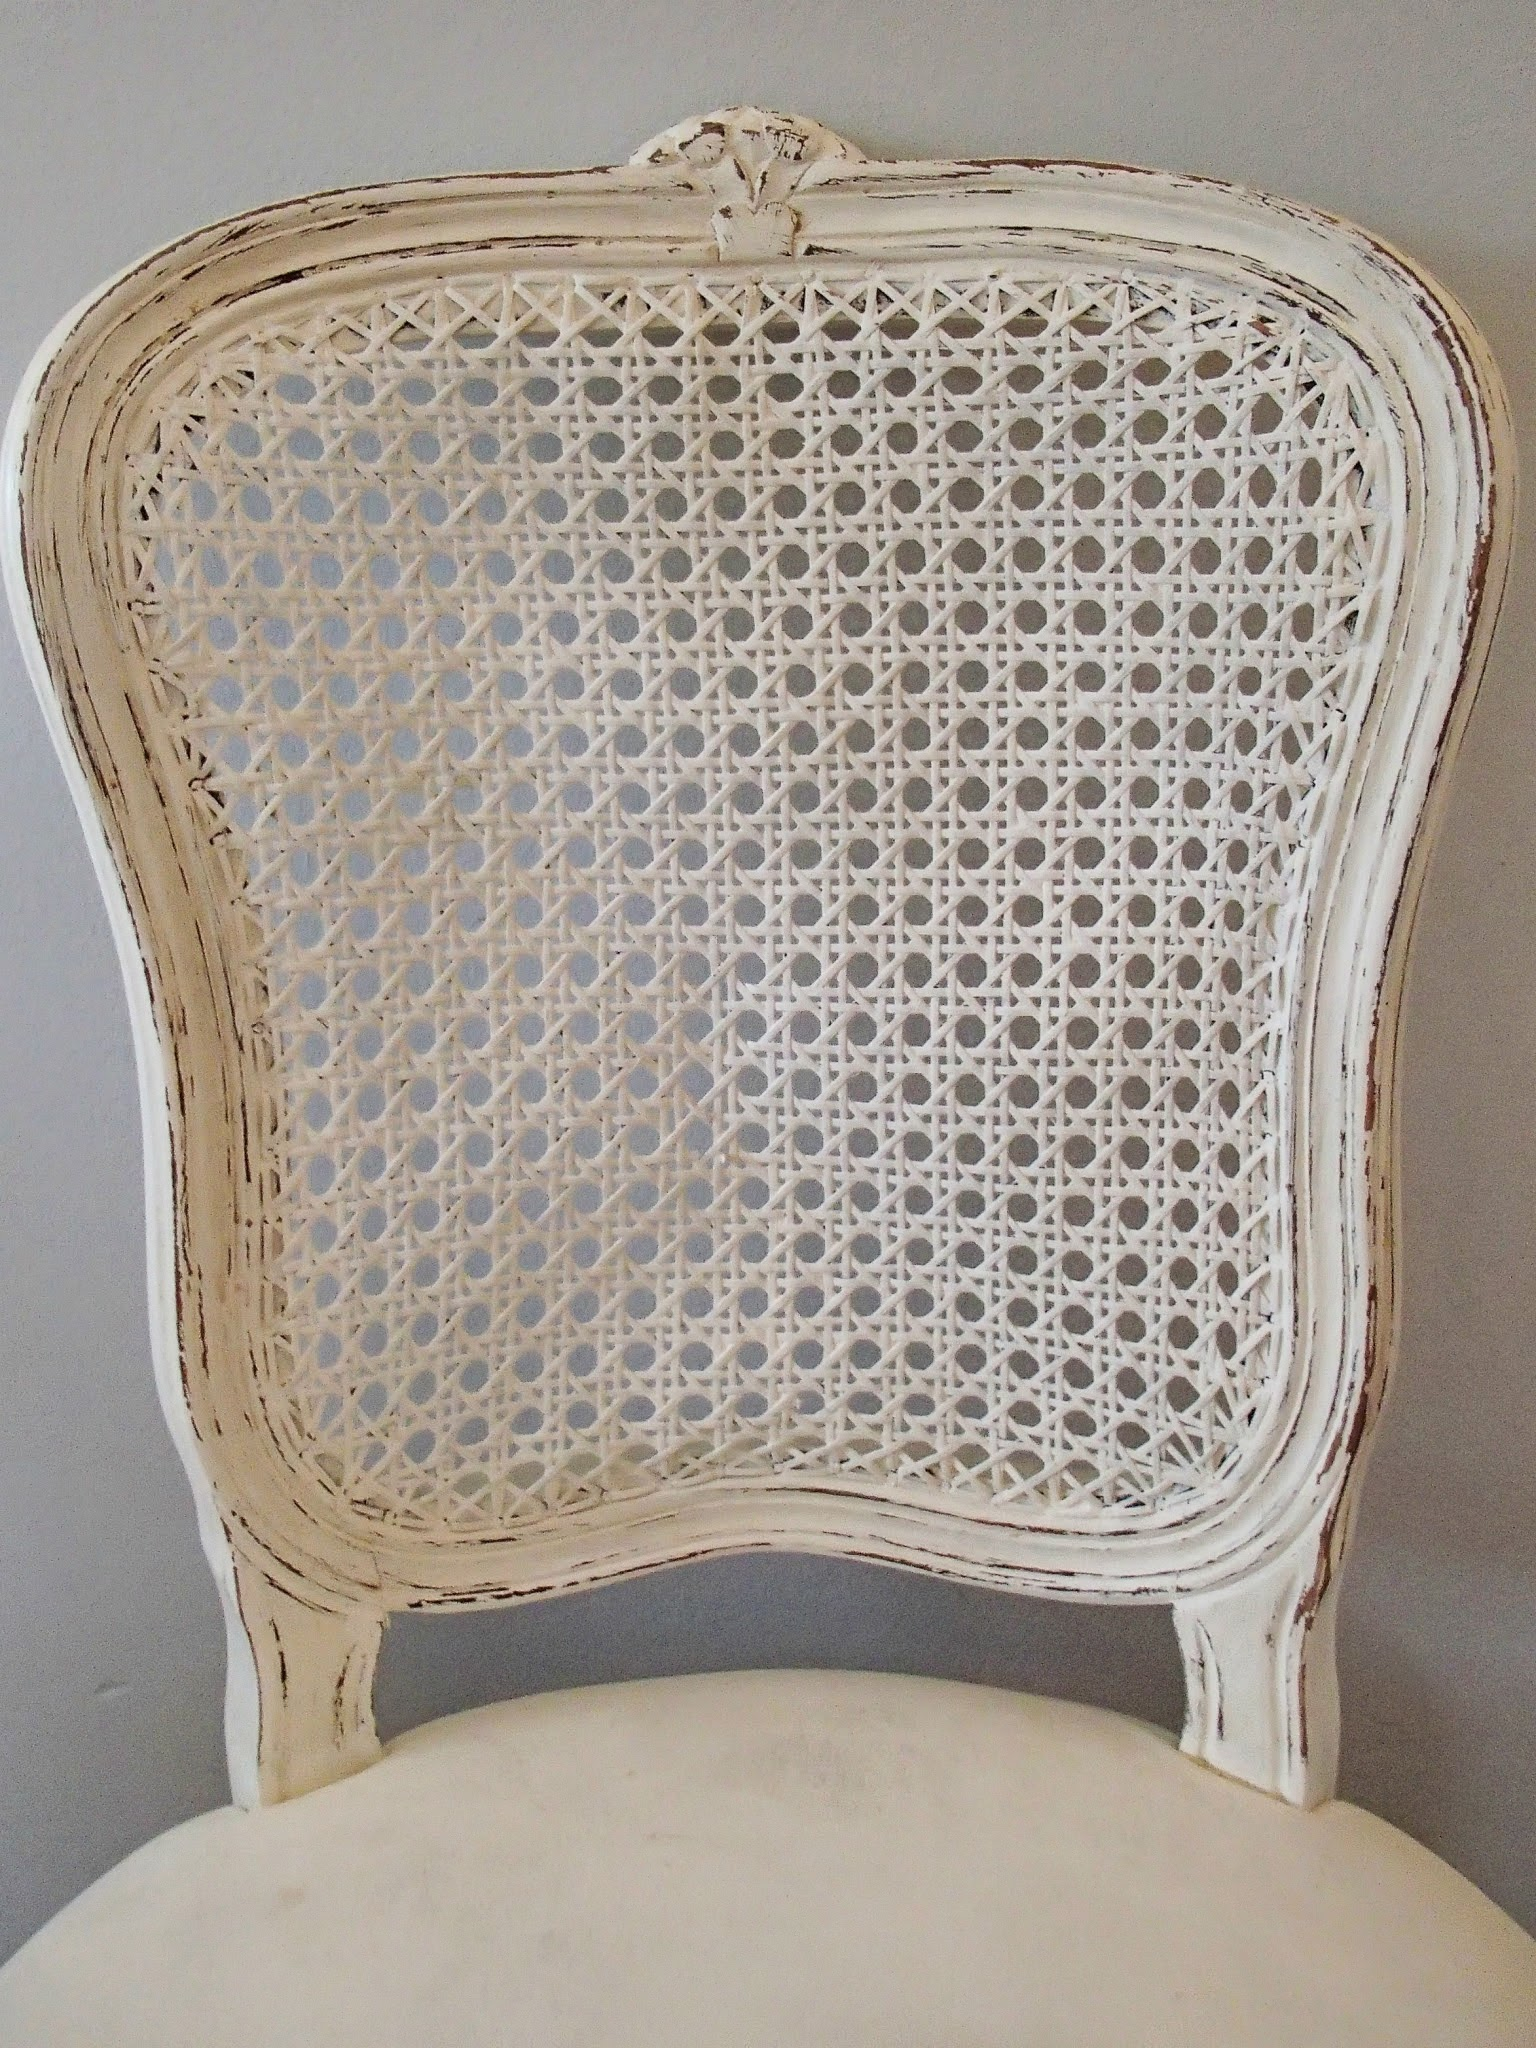 D D 39 S Cottage And Design Creamy White French Cane Chair